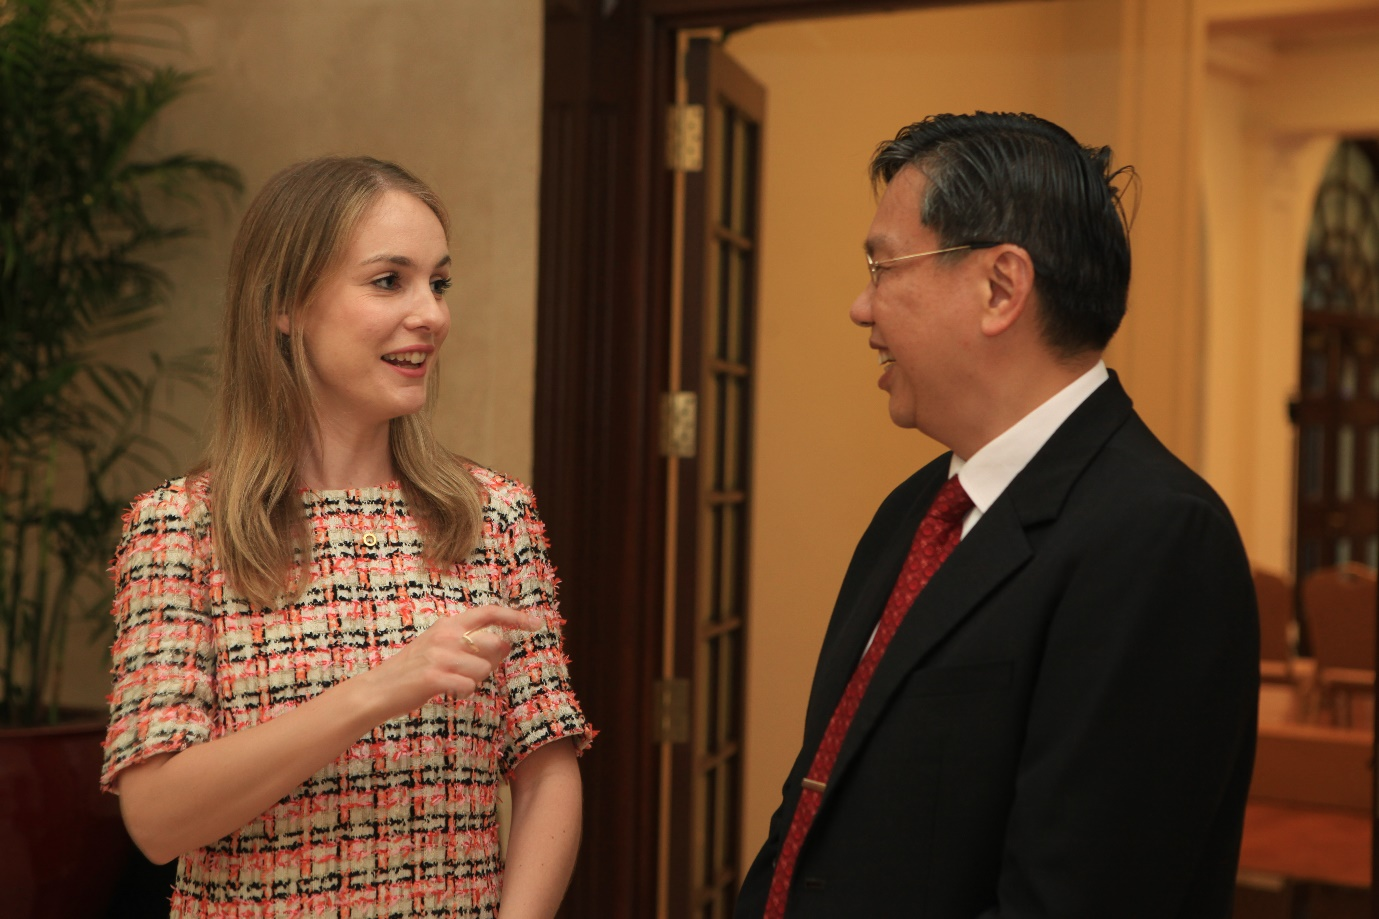 Ms Kate Tyrrell, PFD 2018 participant from Ireland, having an informal discussion with Mr Chee Wee Kiong, Permanent Secretary, Ministry of Foreign Affairs, at a tea reception after the Closing Ceremony of PFD 2018 11 May 2018